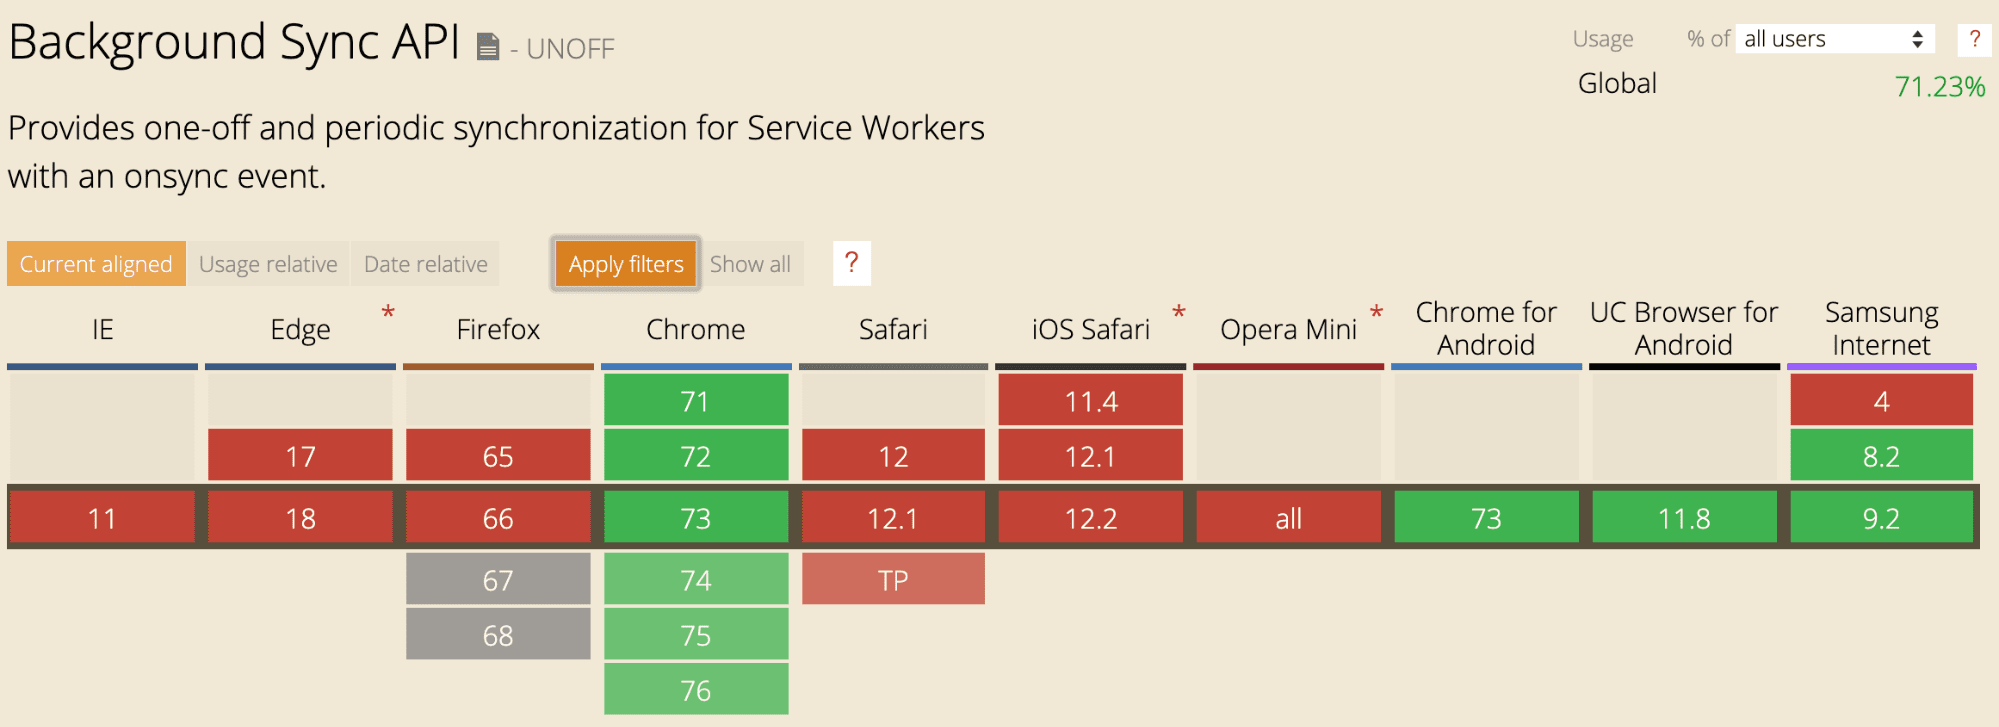 Background Sync support in major browsers.